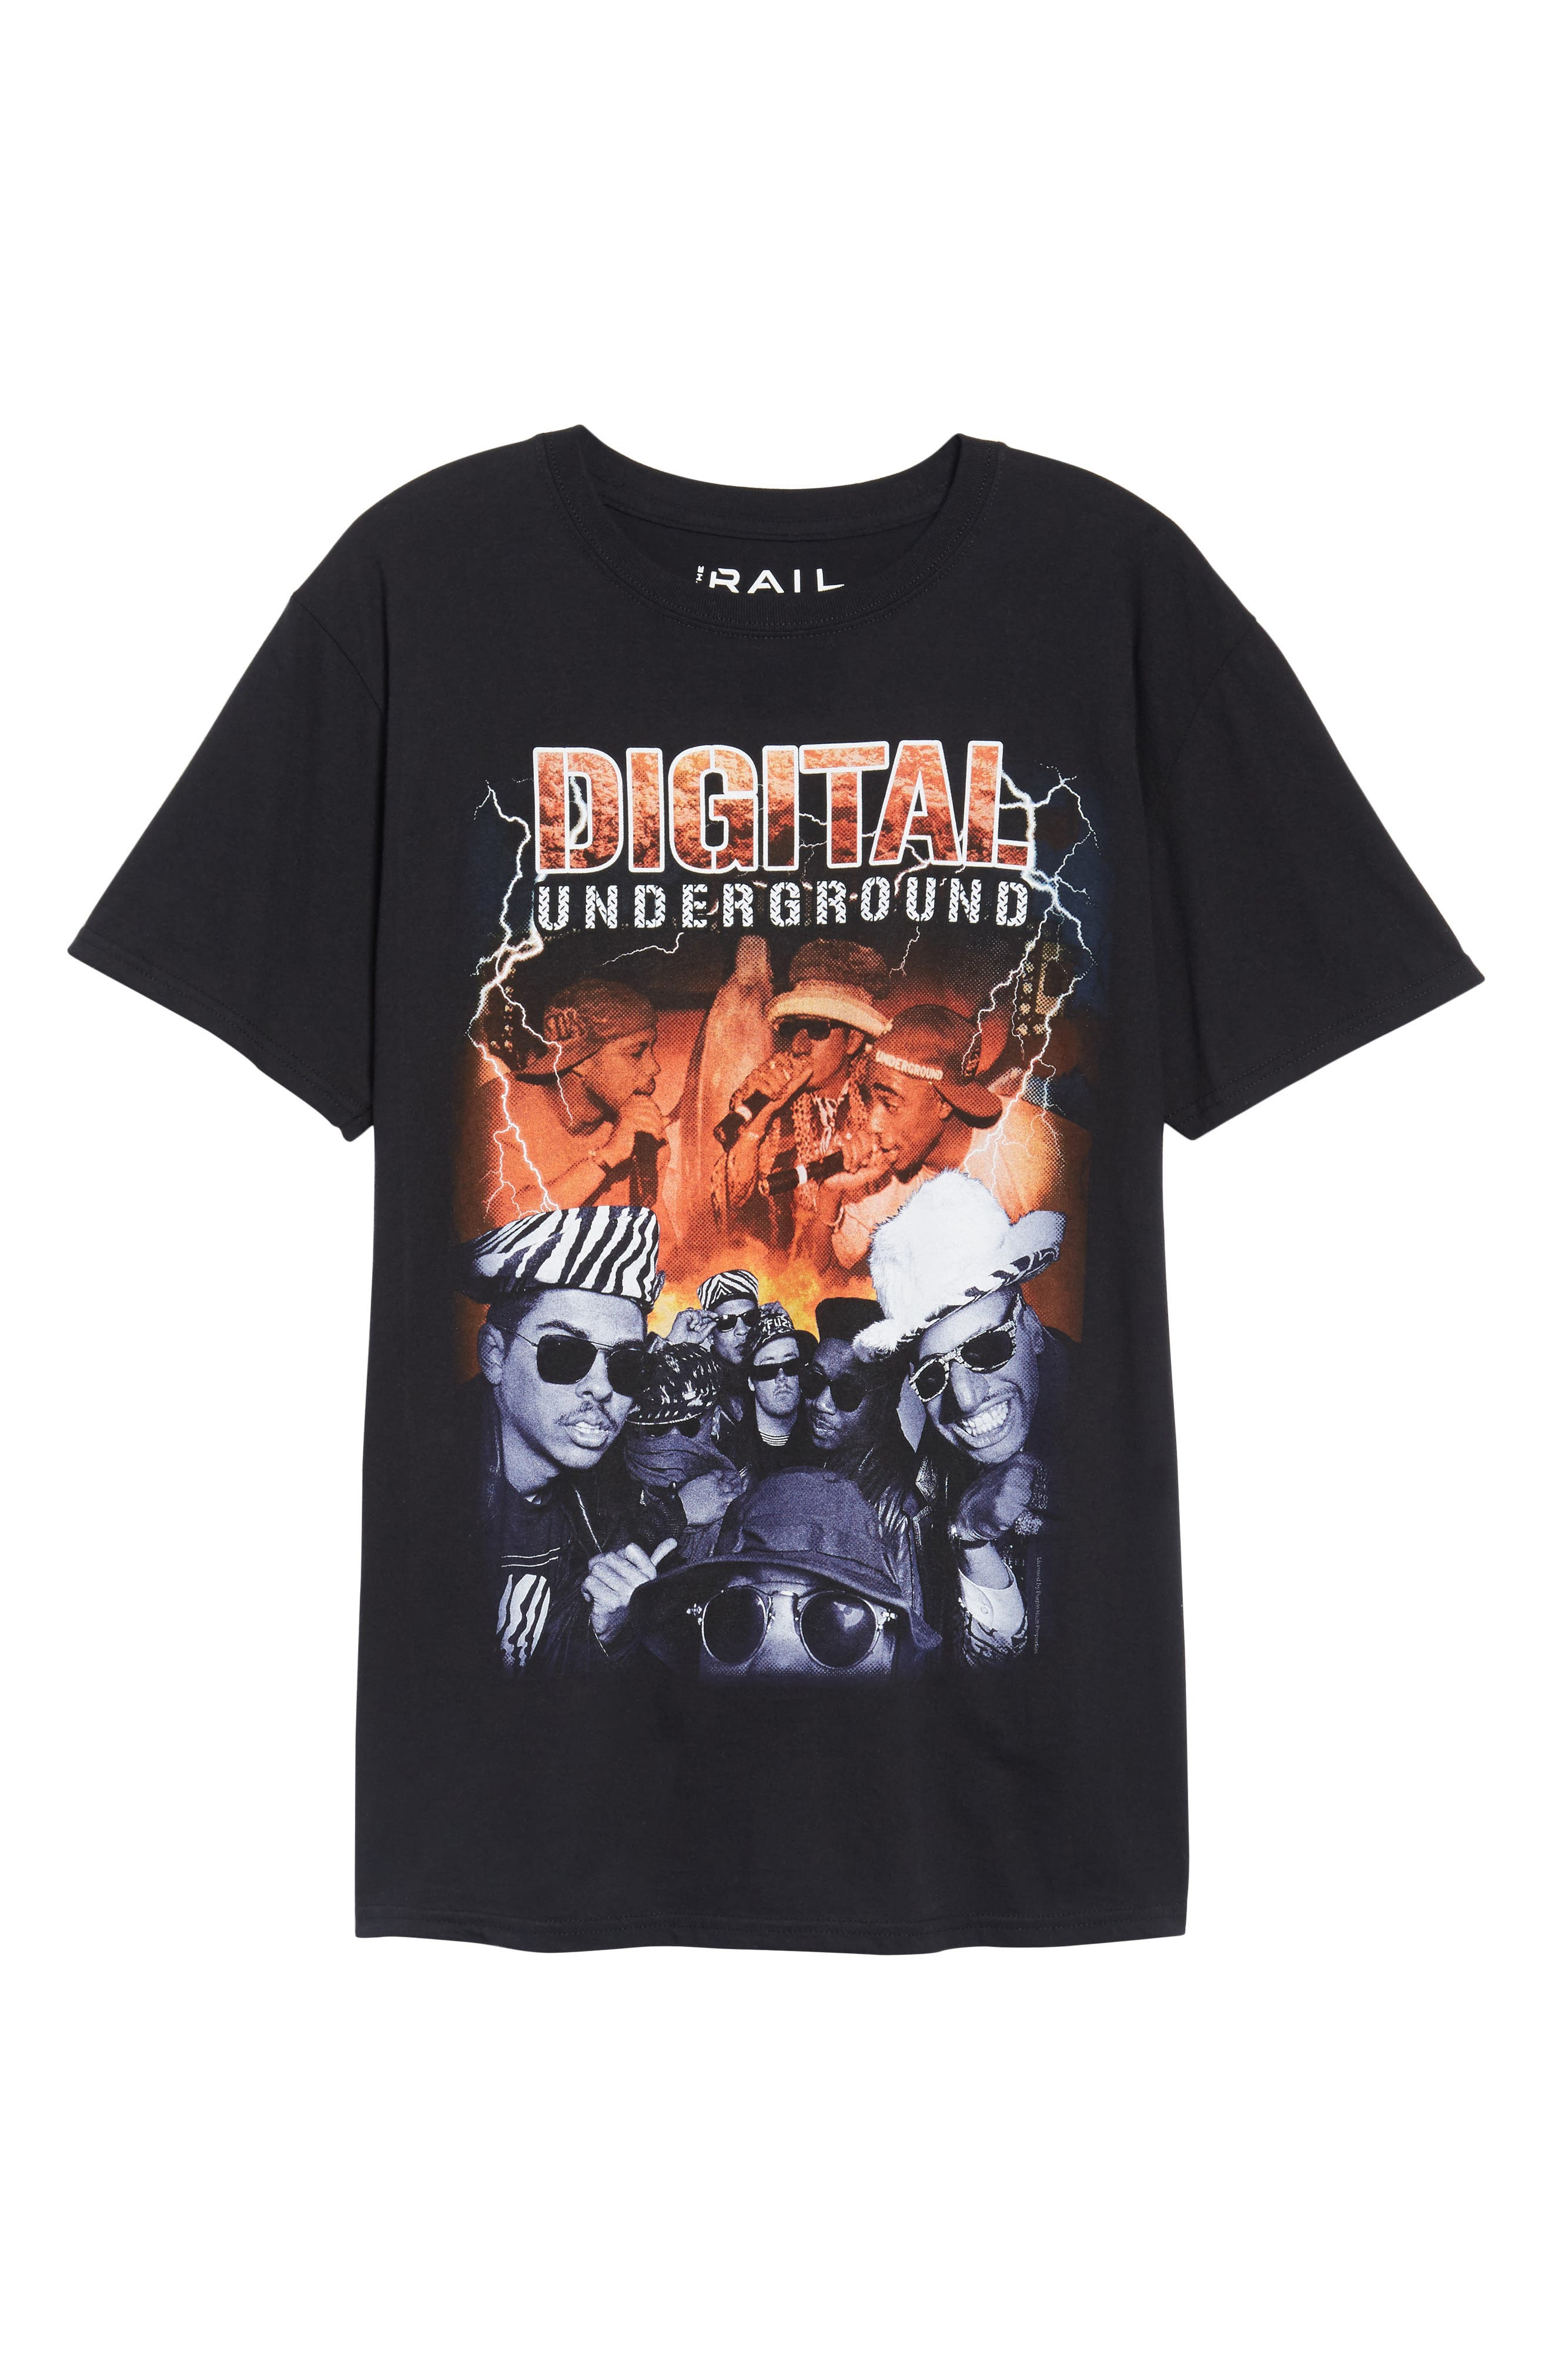 Alternate Image 6  - The Rail Digital Underground Graphic T-Shirt